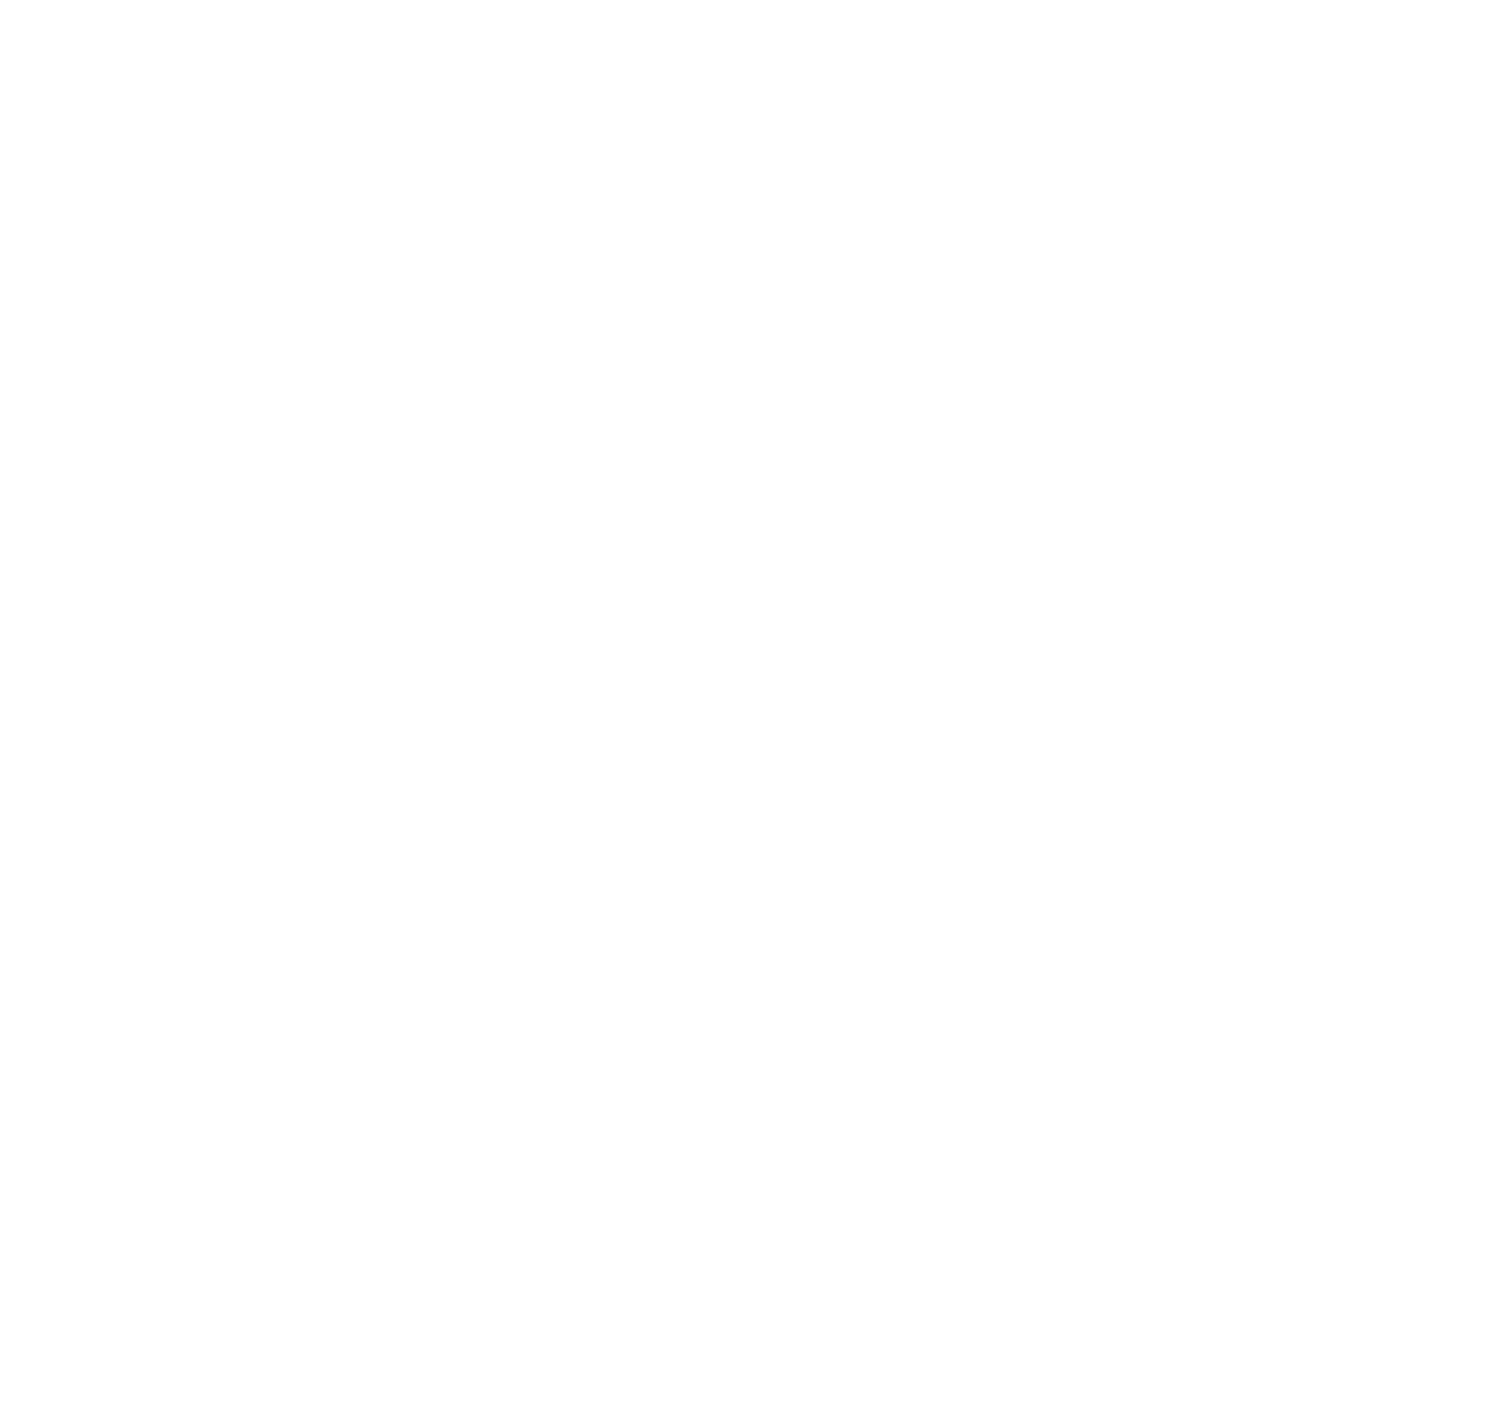 Spin to break the cycle